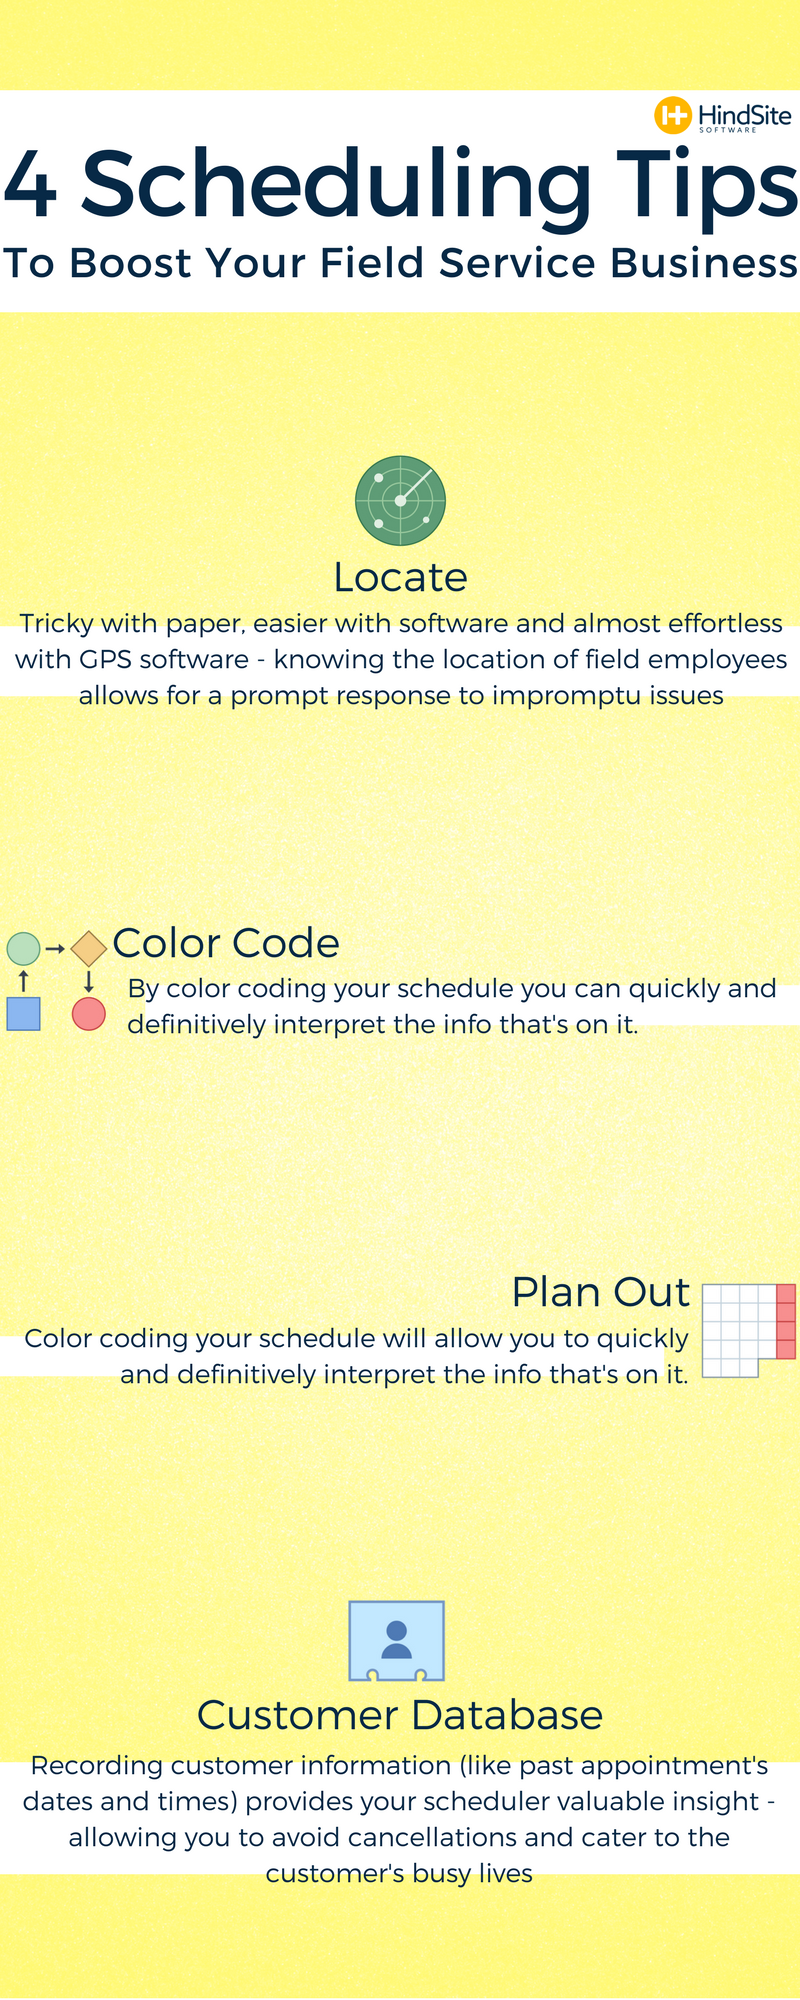 4 Scheduling Tips For Your Field Service Business.png